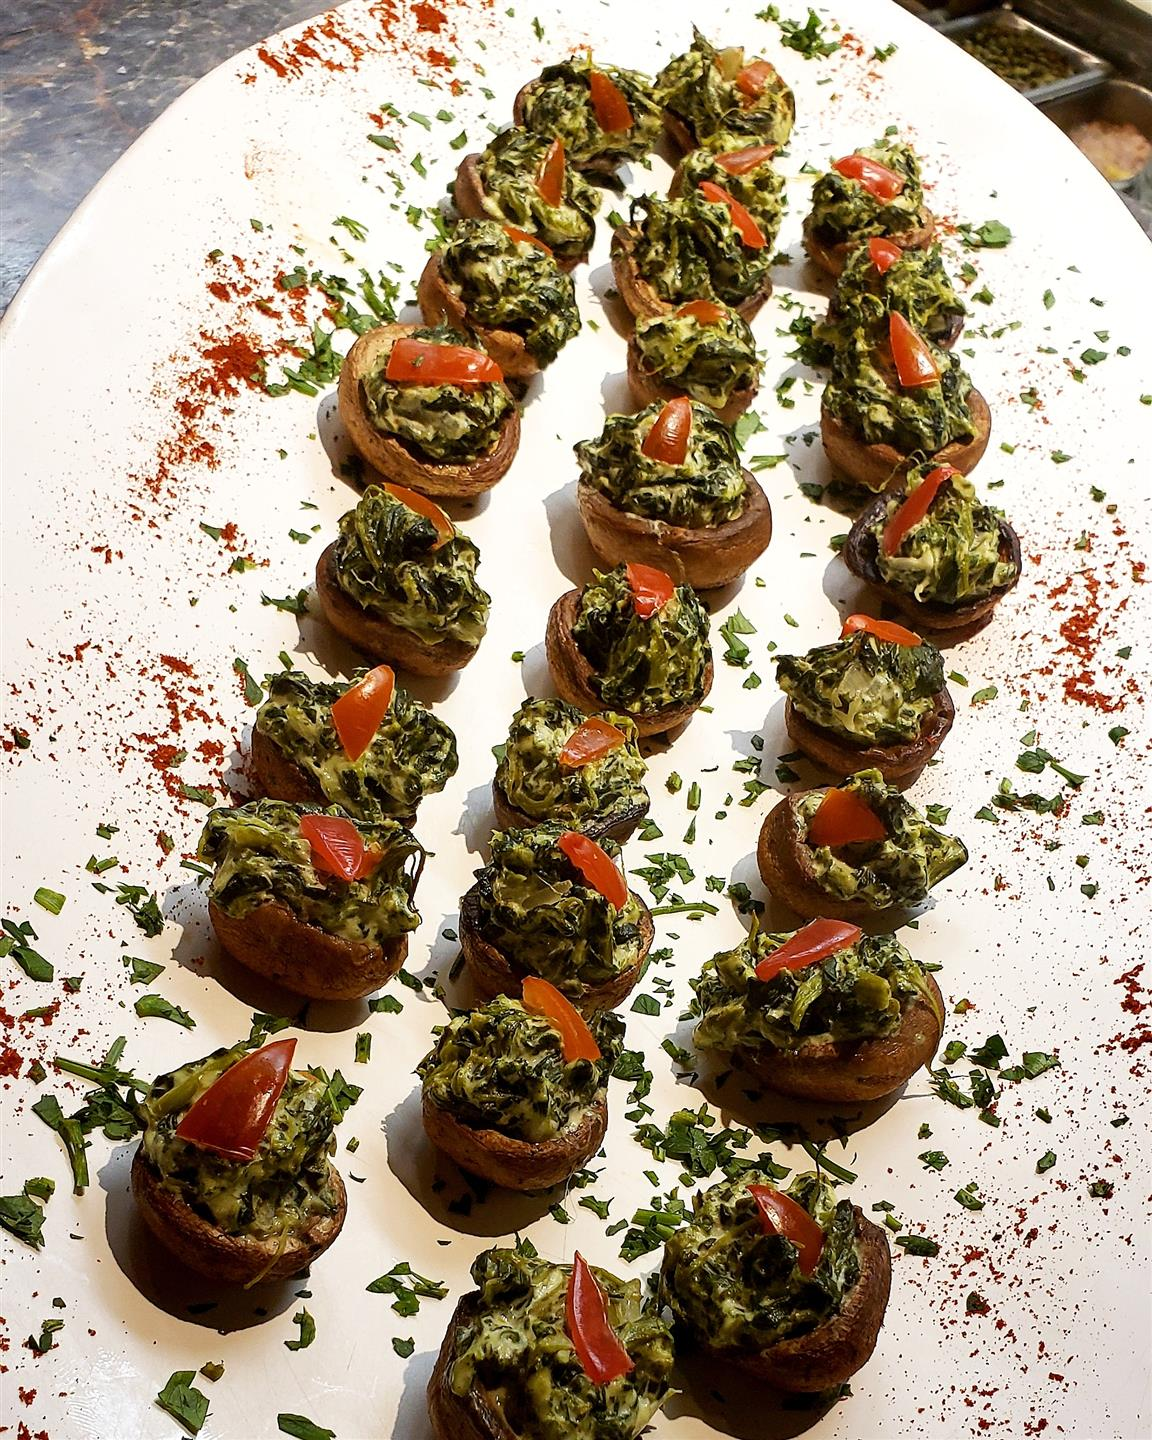 Three rows of stuffed mushrooms on a plate.